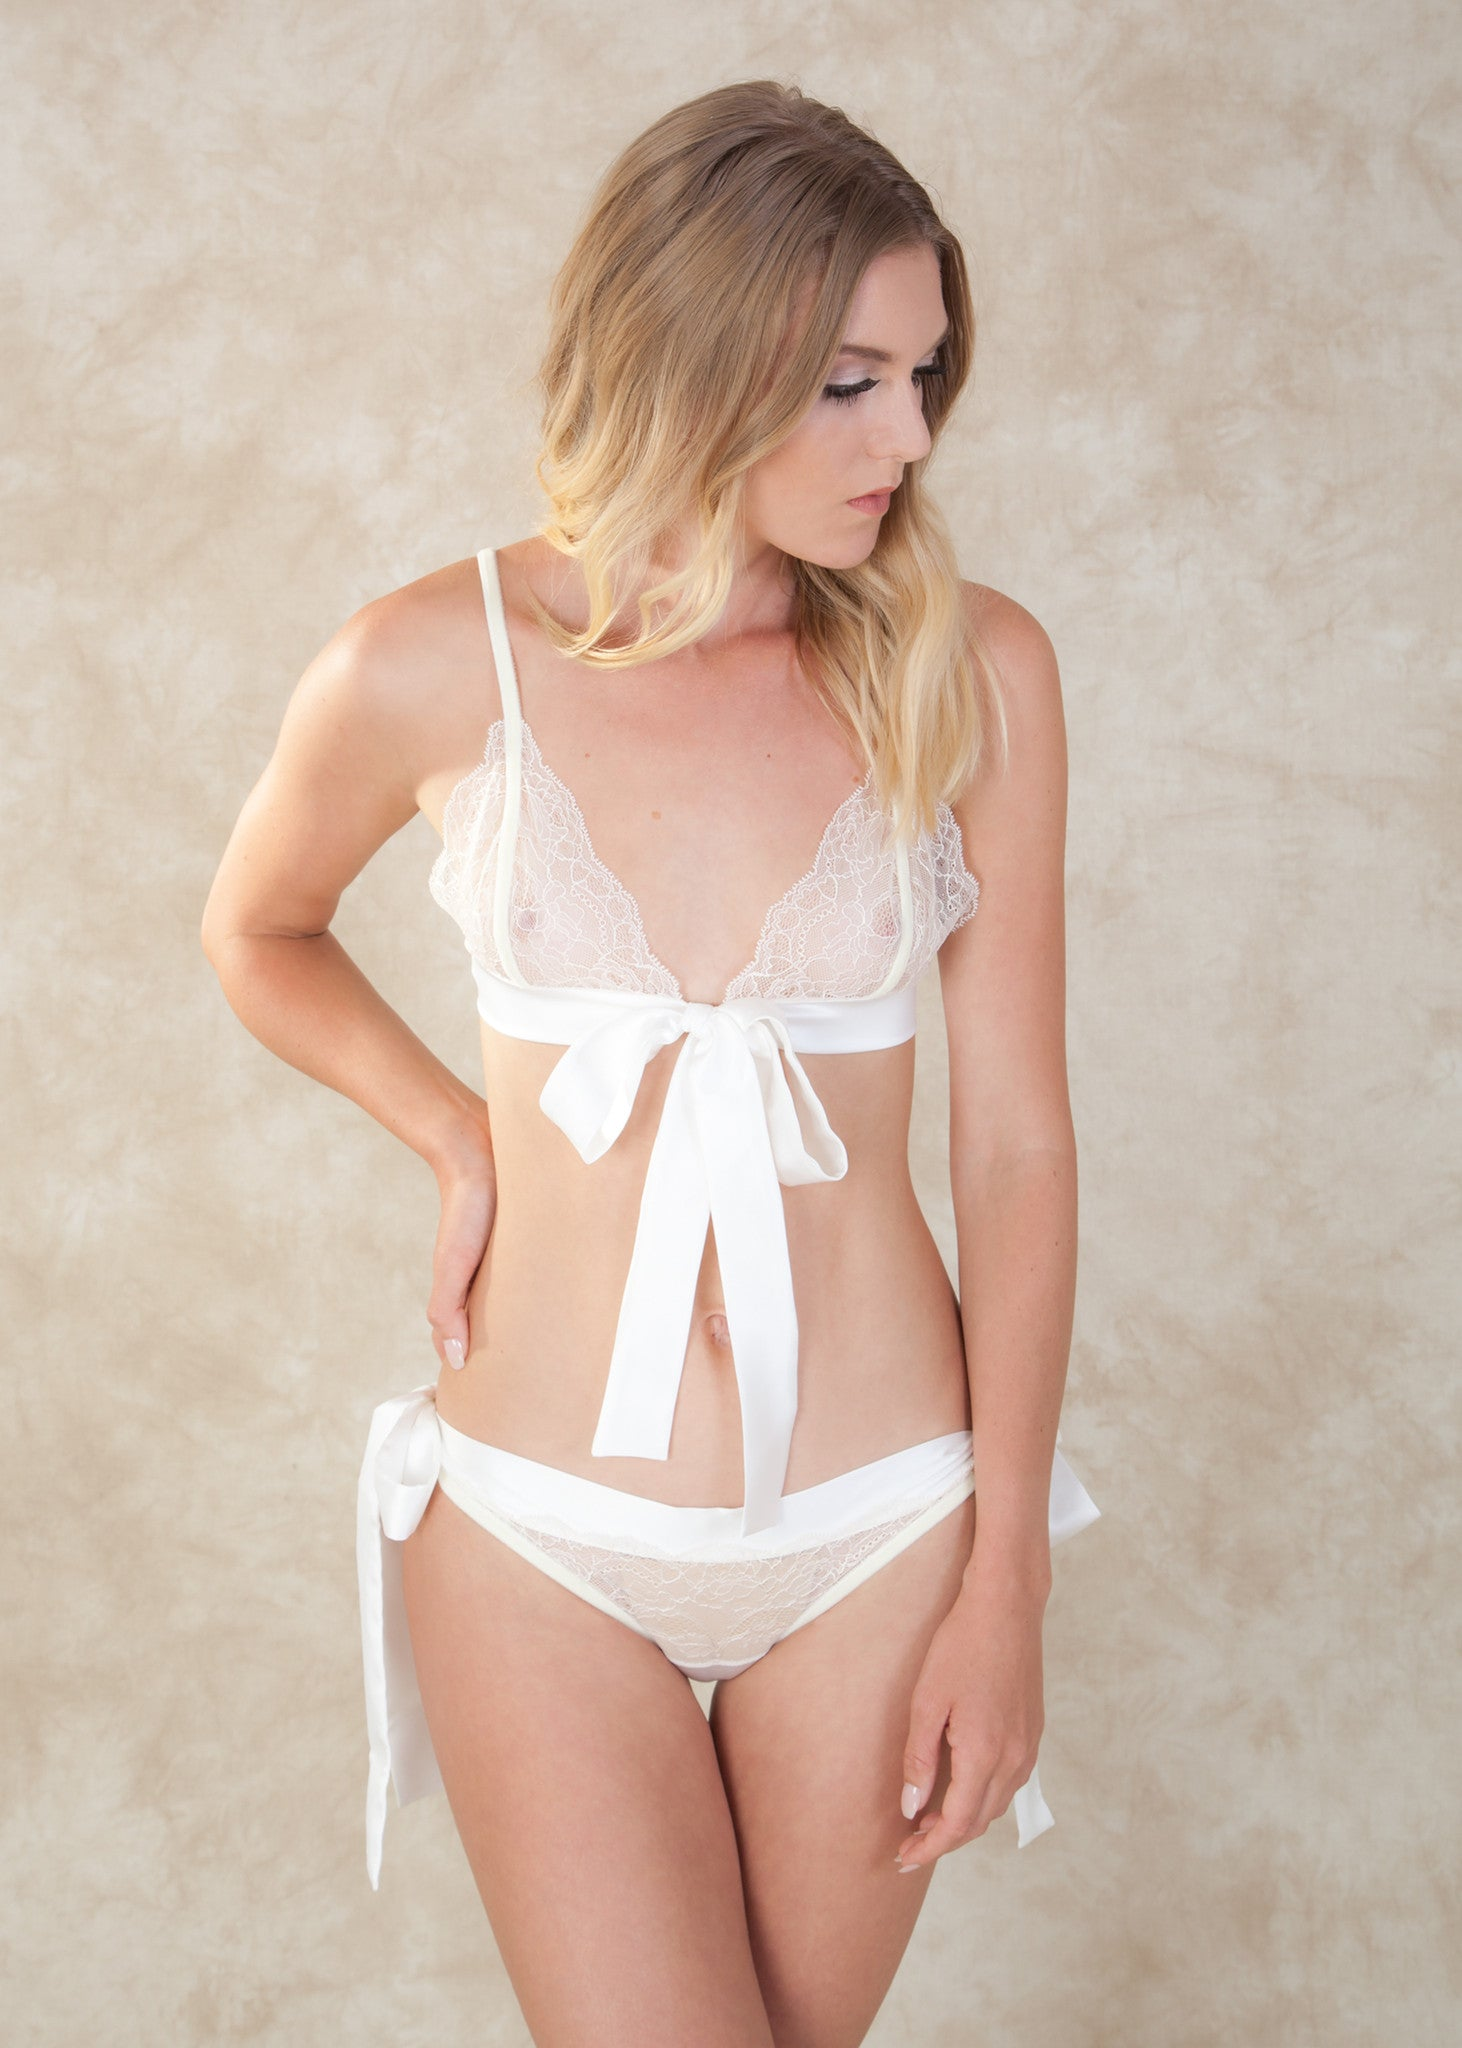 053877233a1 By Amoralle. The Adeline Bralette is made with delicate lace